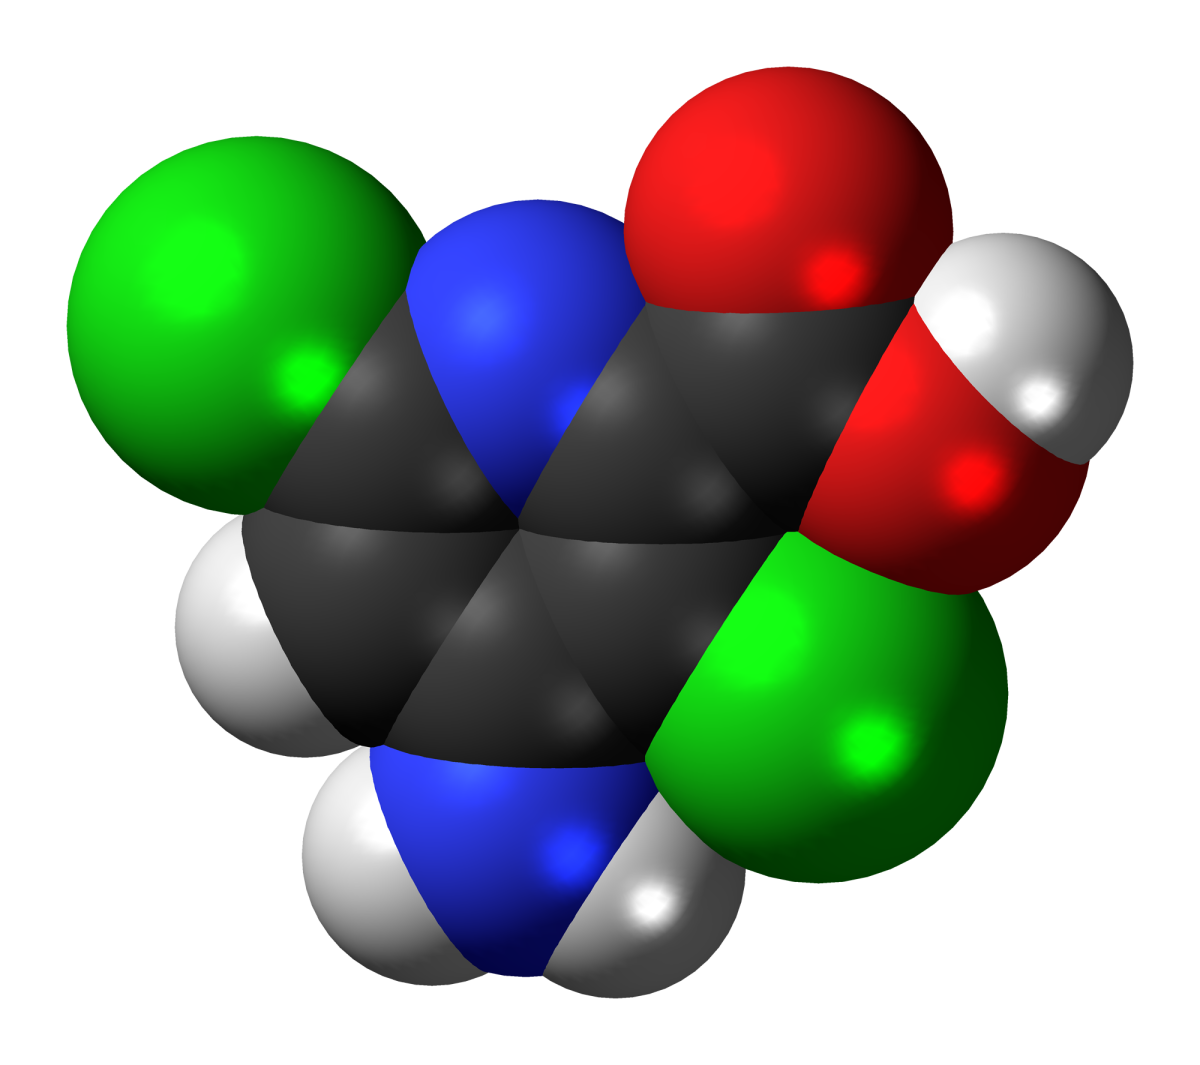 Model of the aminopyralid molecule, a herbicide created by Dow AgroScience.